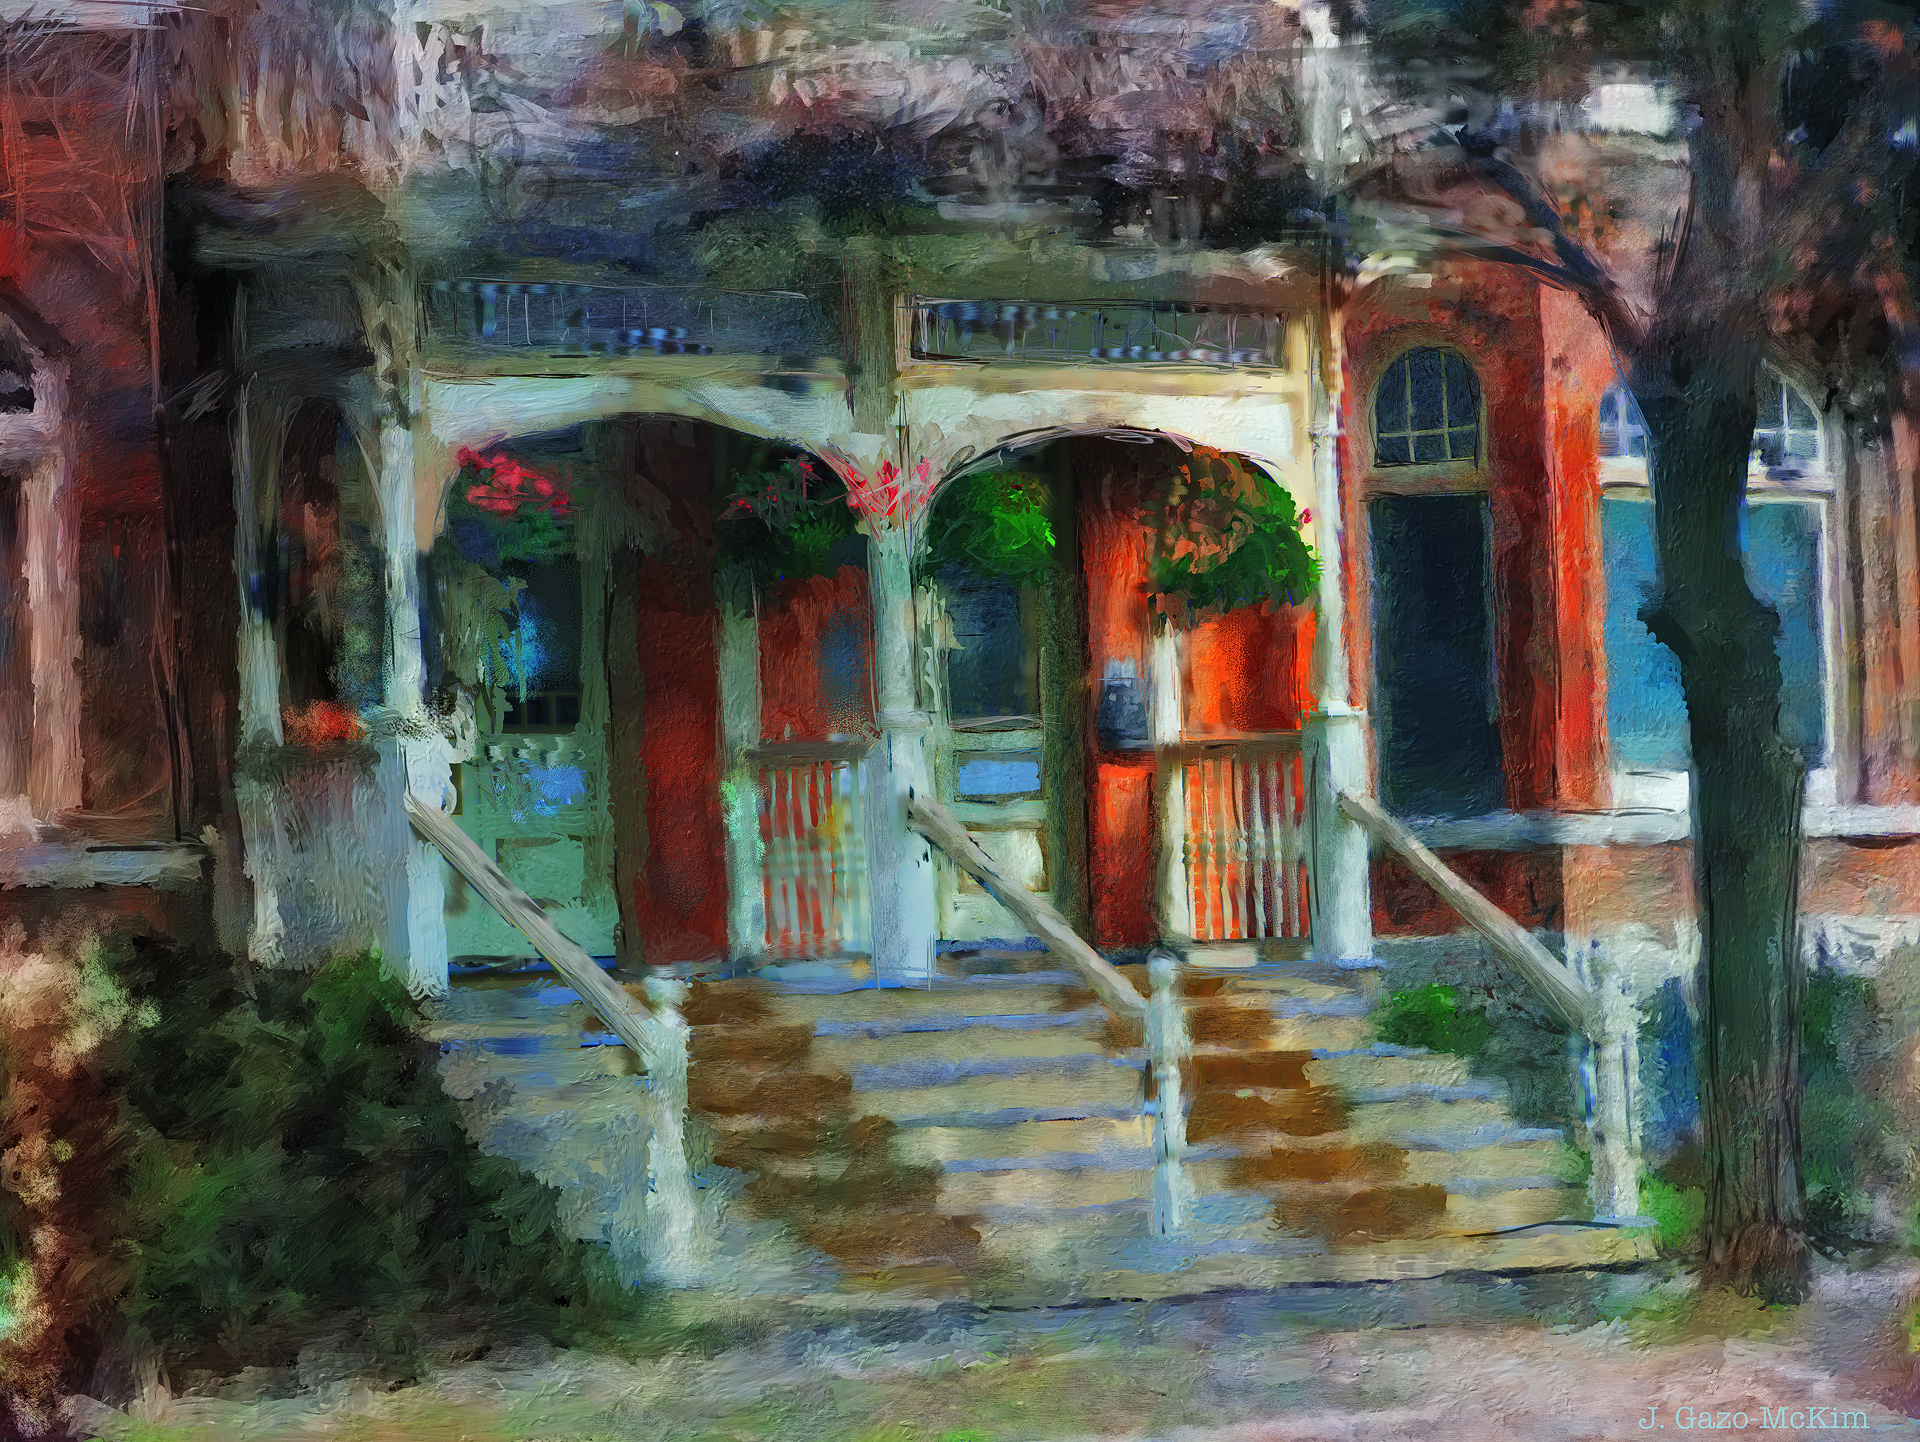 Porch in the Morning Light by J. Gazo-McKim